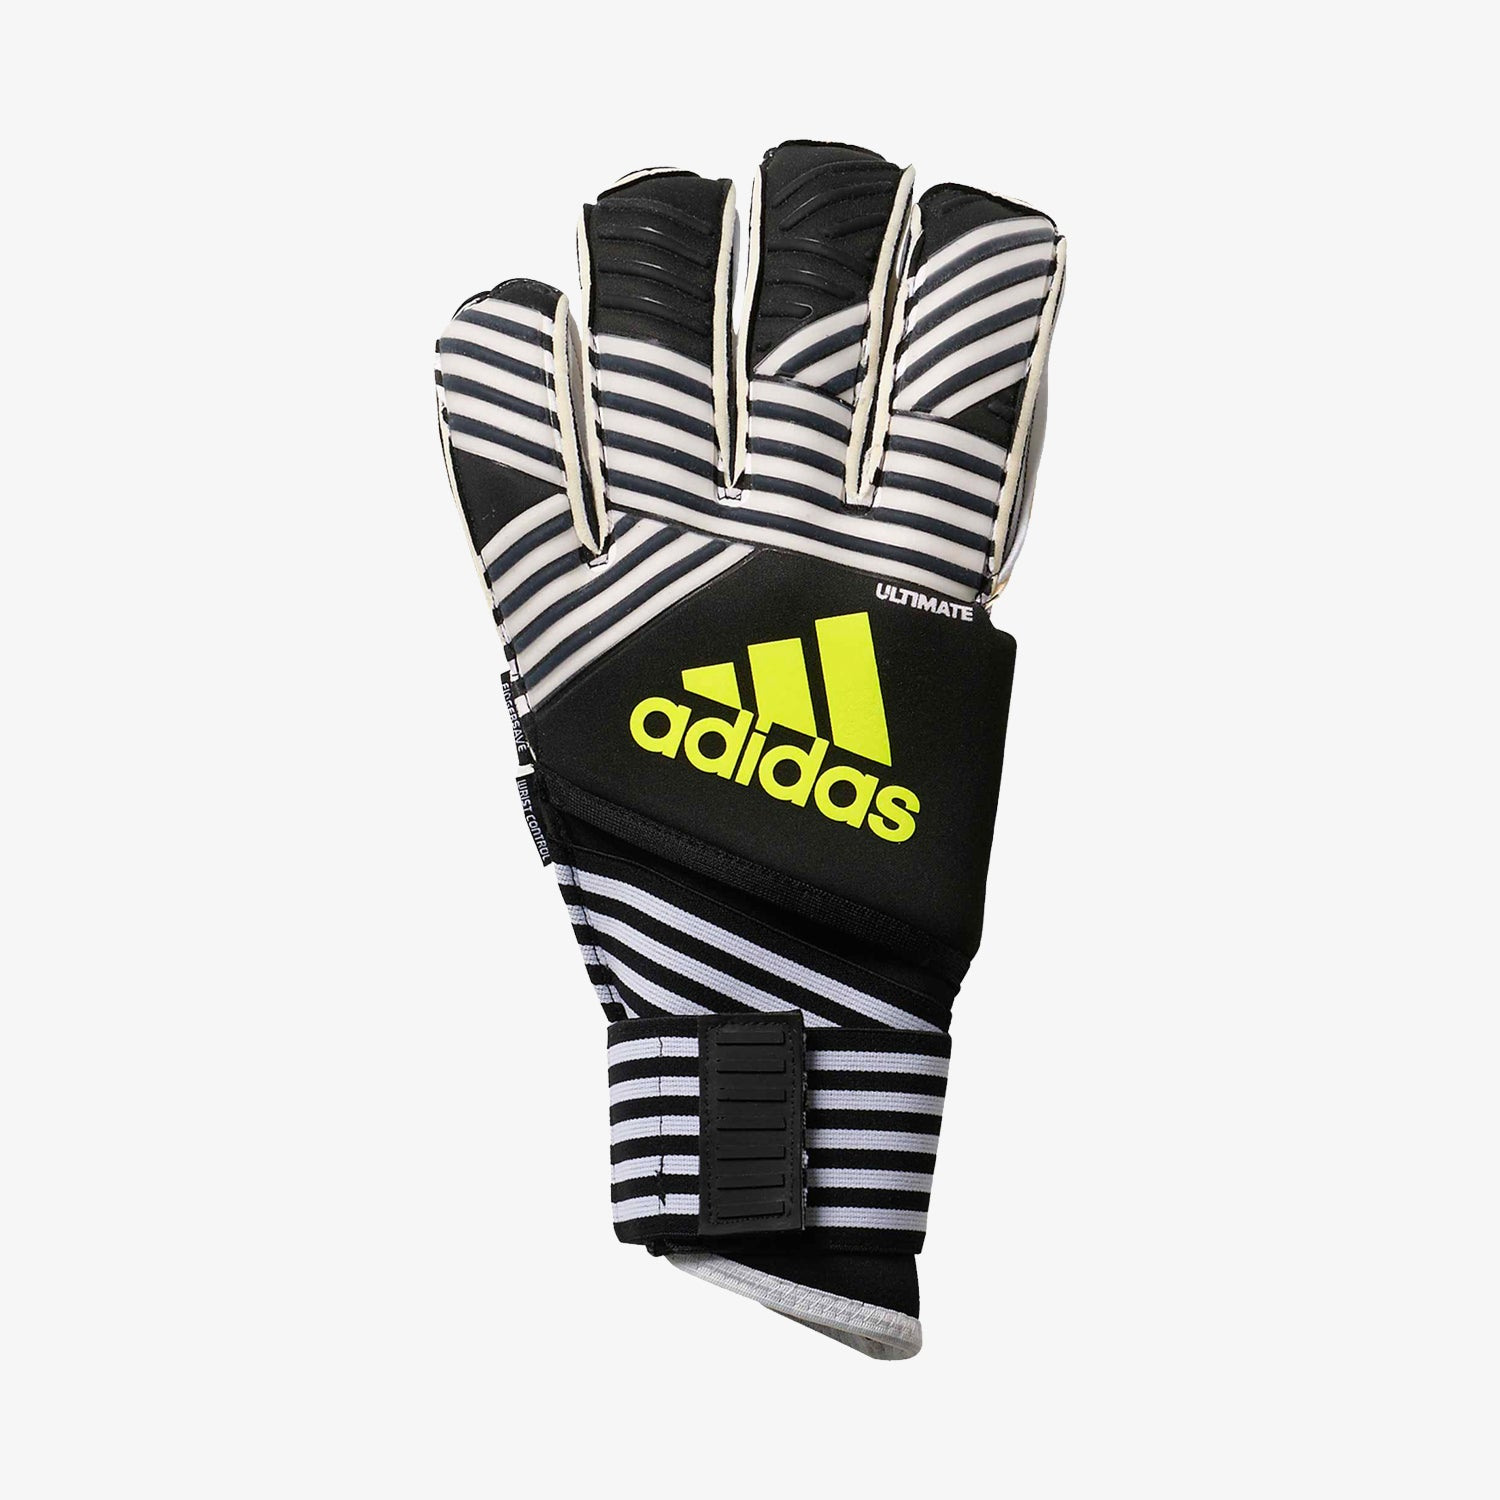 Men's Ace Trans Ultimate Gloves